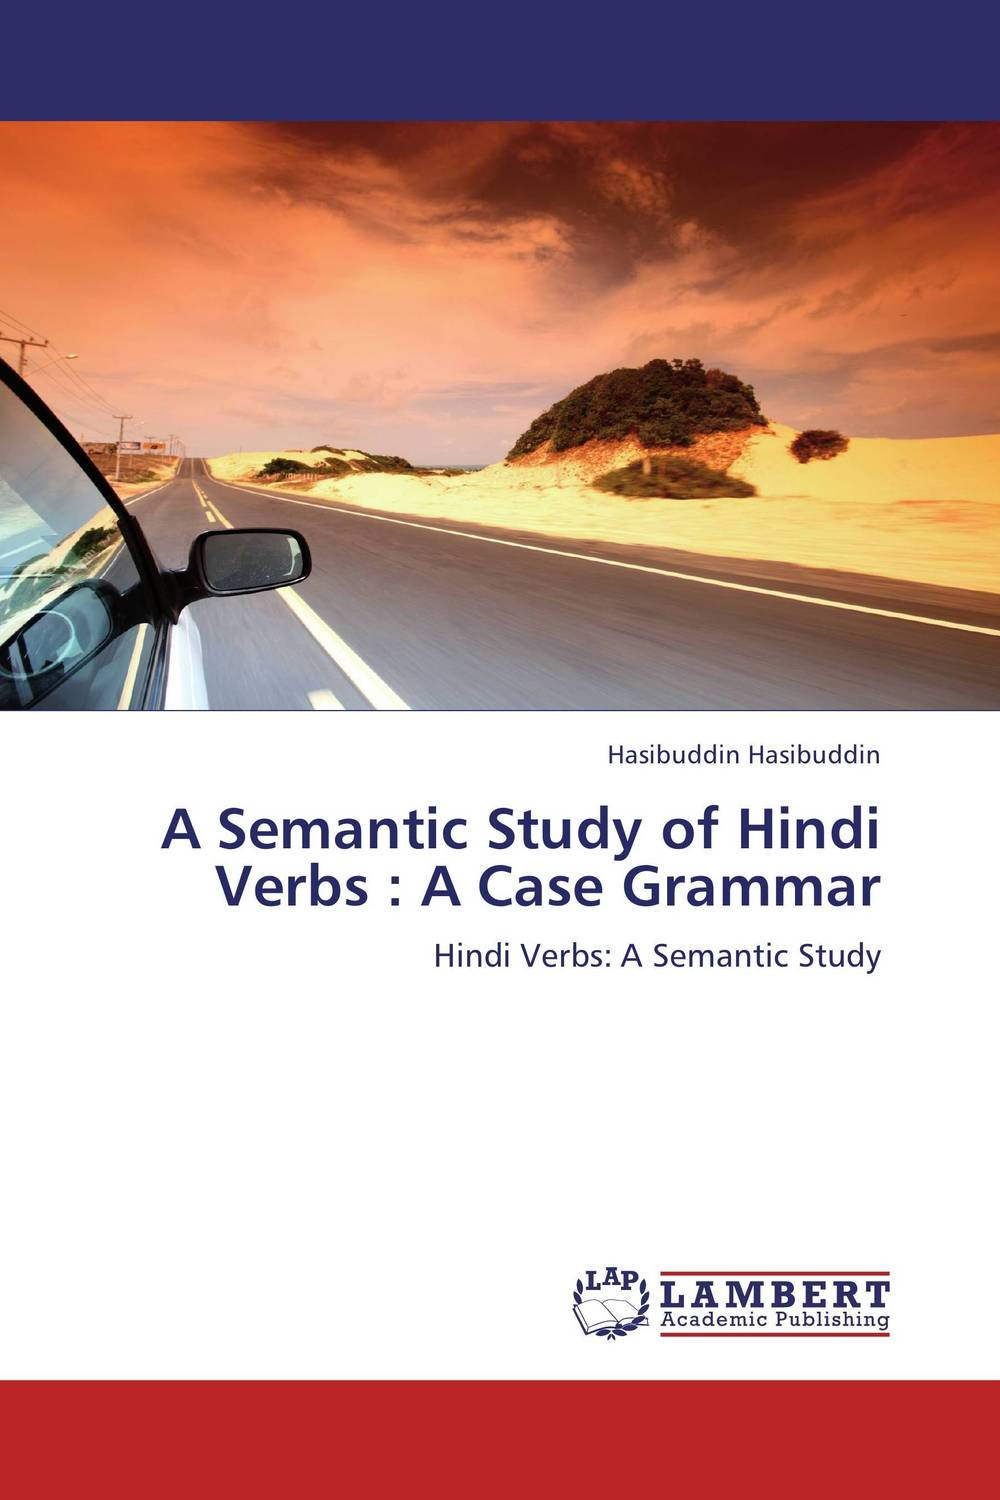 A Semantic Study of Hindi Verbs : A Case Grammar a study of the religio political thought of abdurrahman wahid